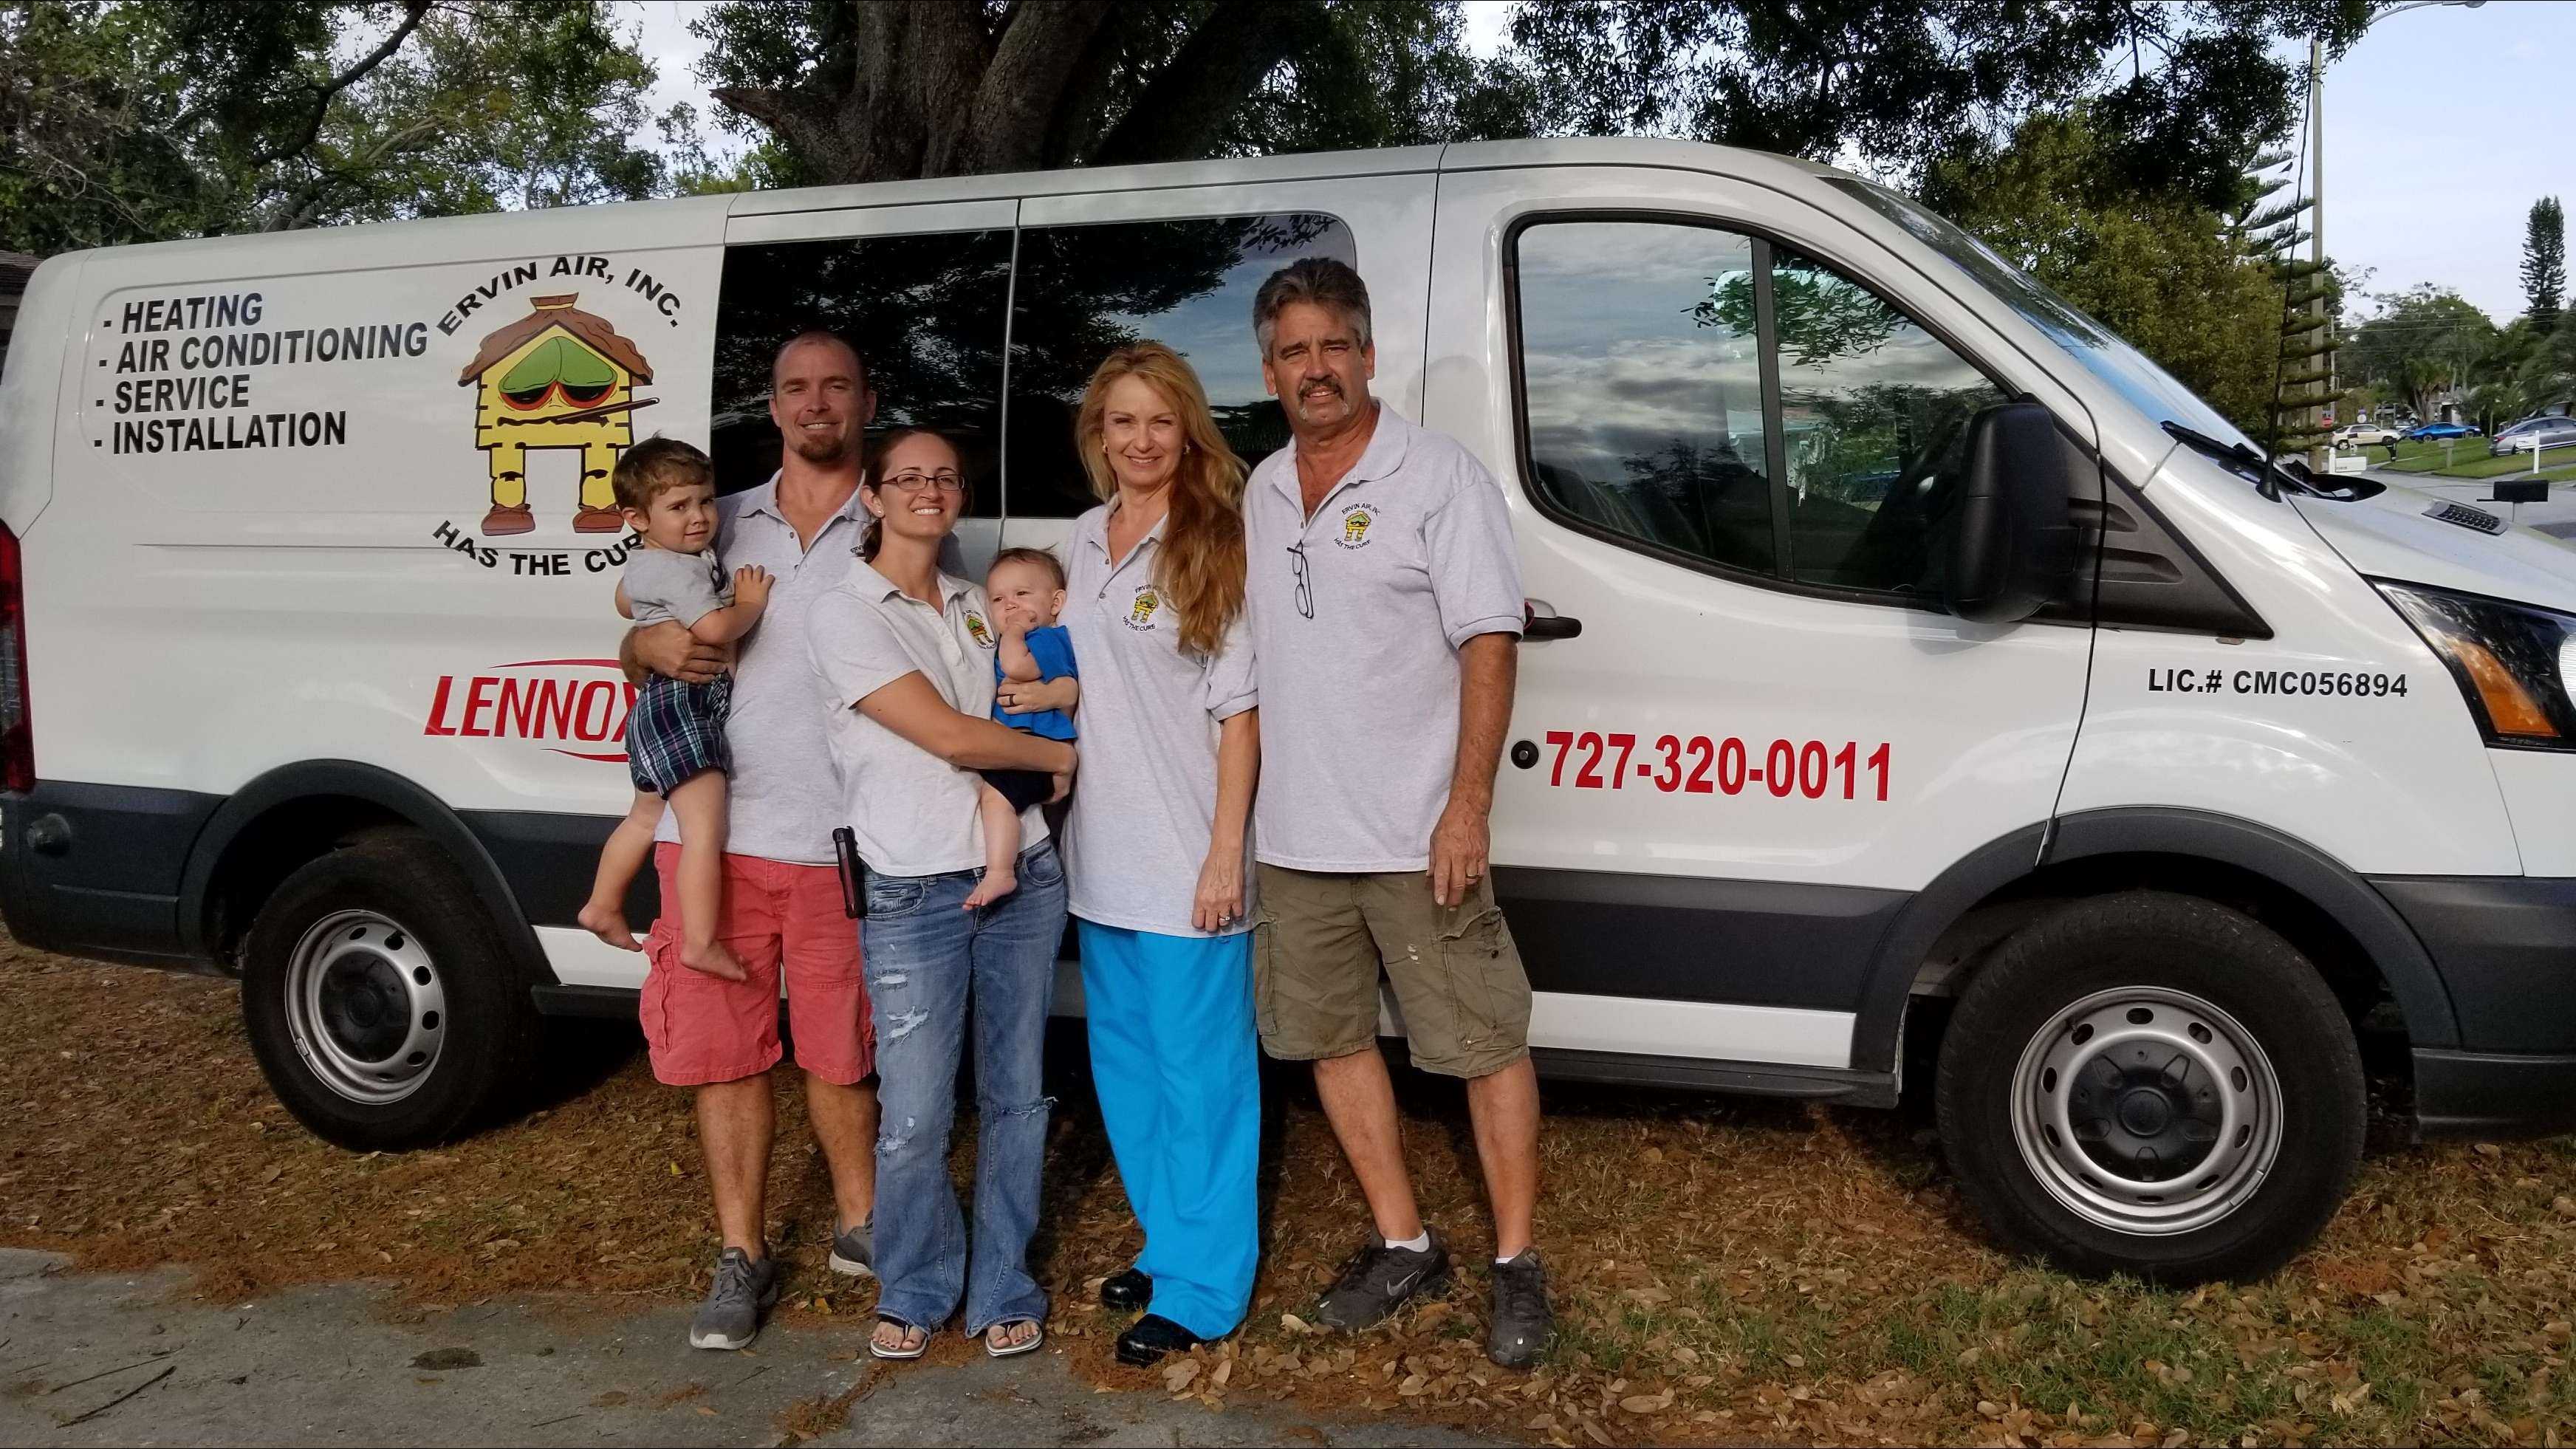 hvac contractor and family, seminole fl